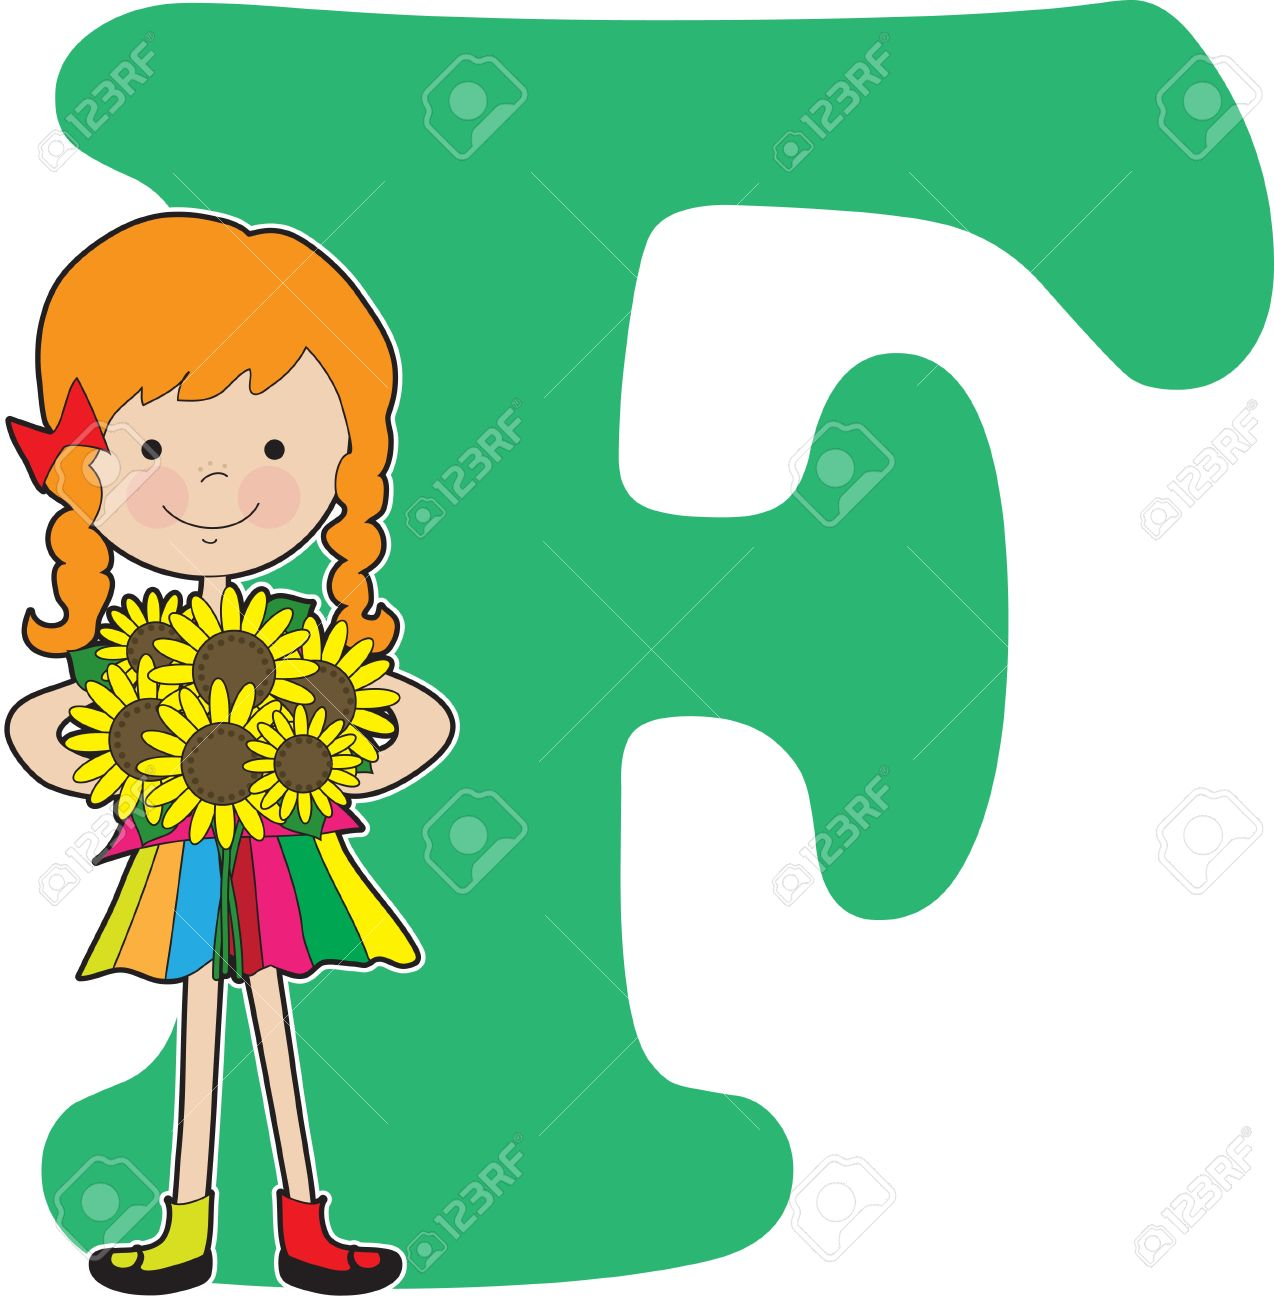 a young girl holding flowers to stand for the letter f royalty free rh 123rf com letter f clip art black and white letter f clip art free